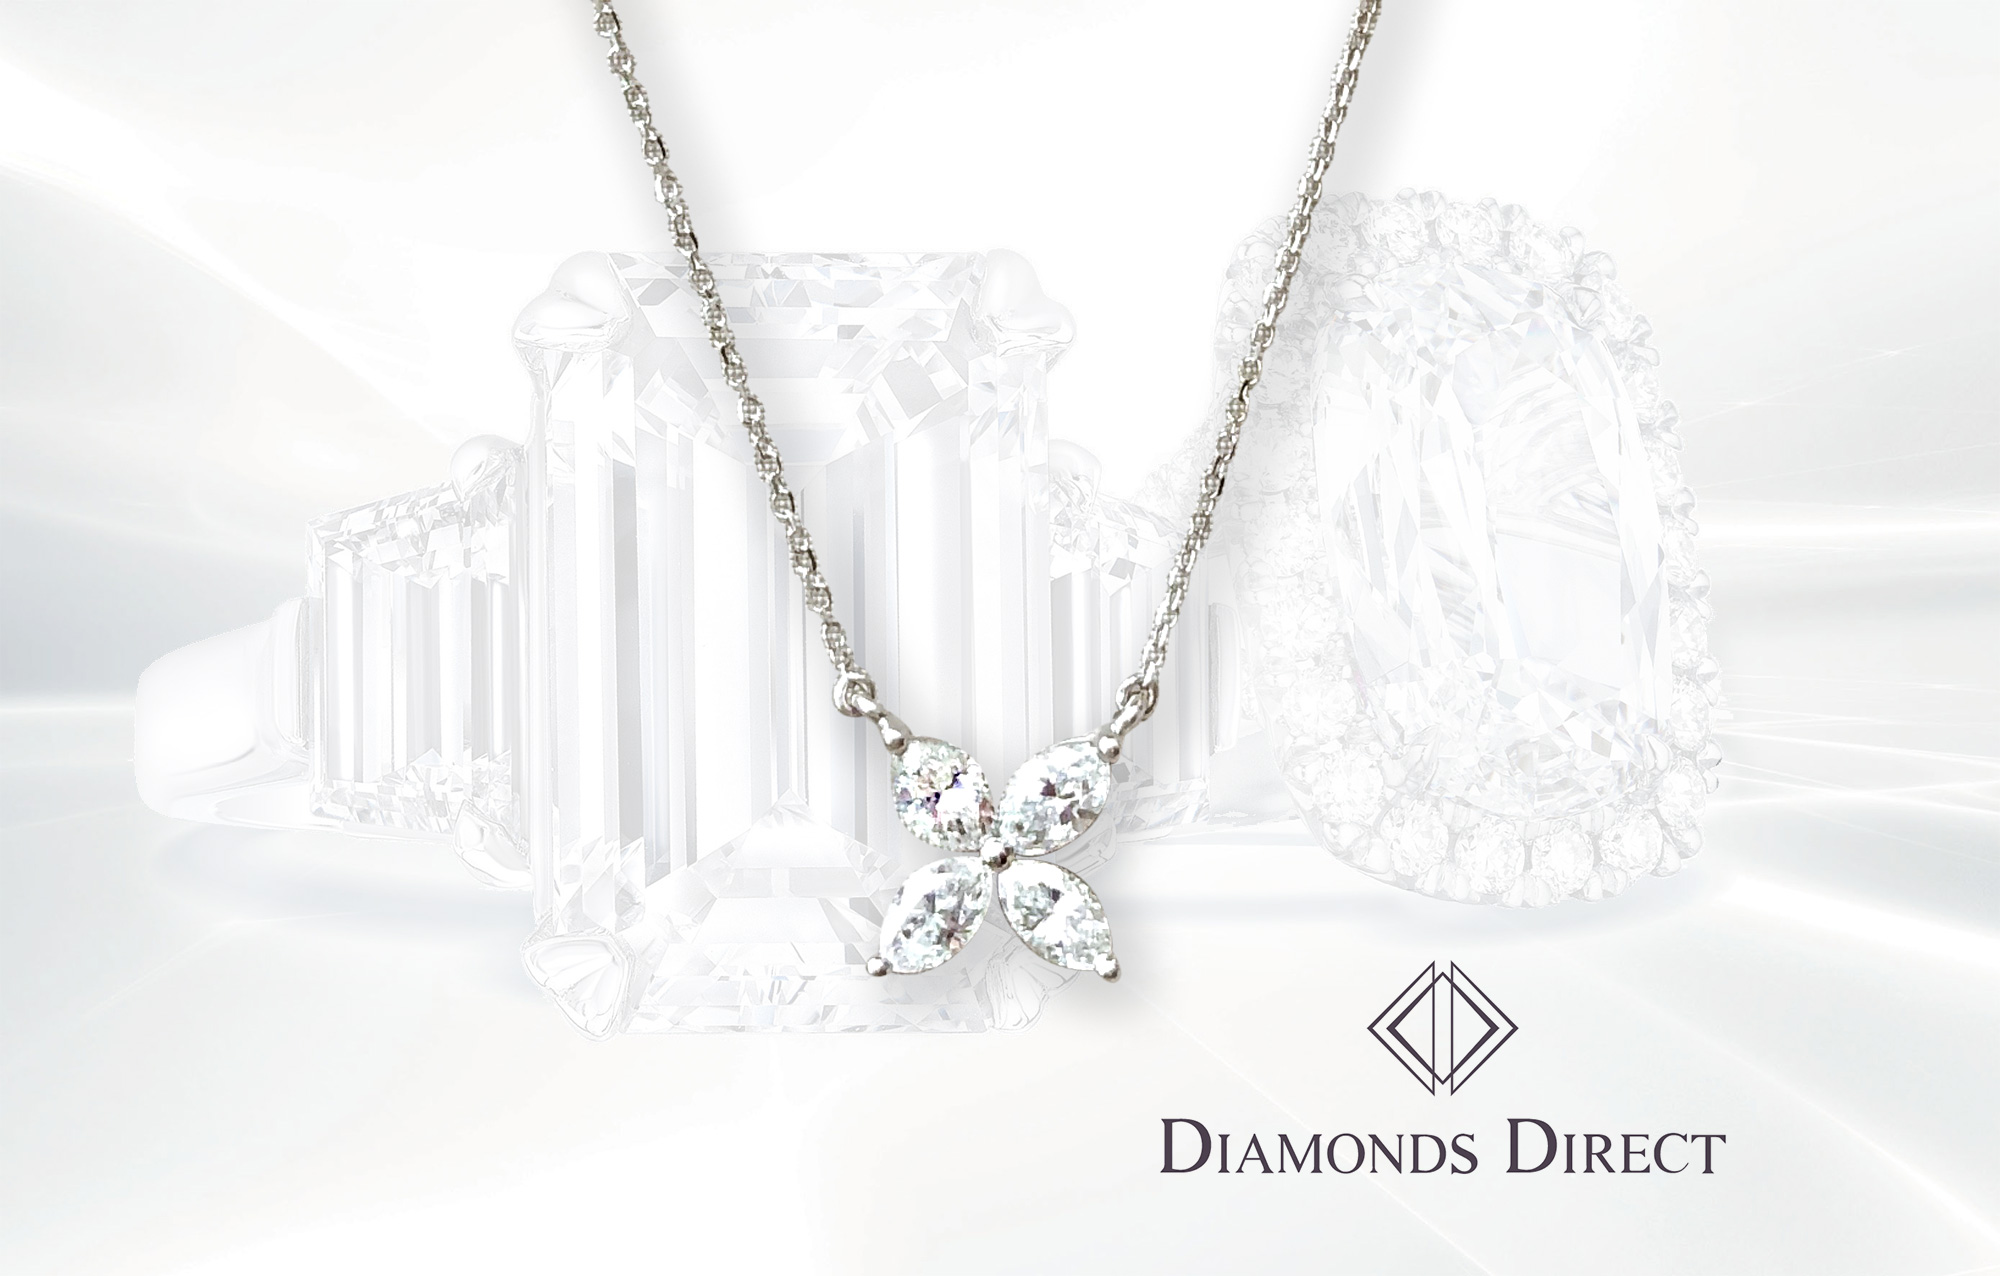 Diamonds Direct Necklace